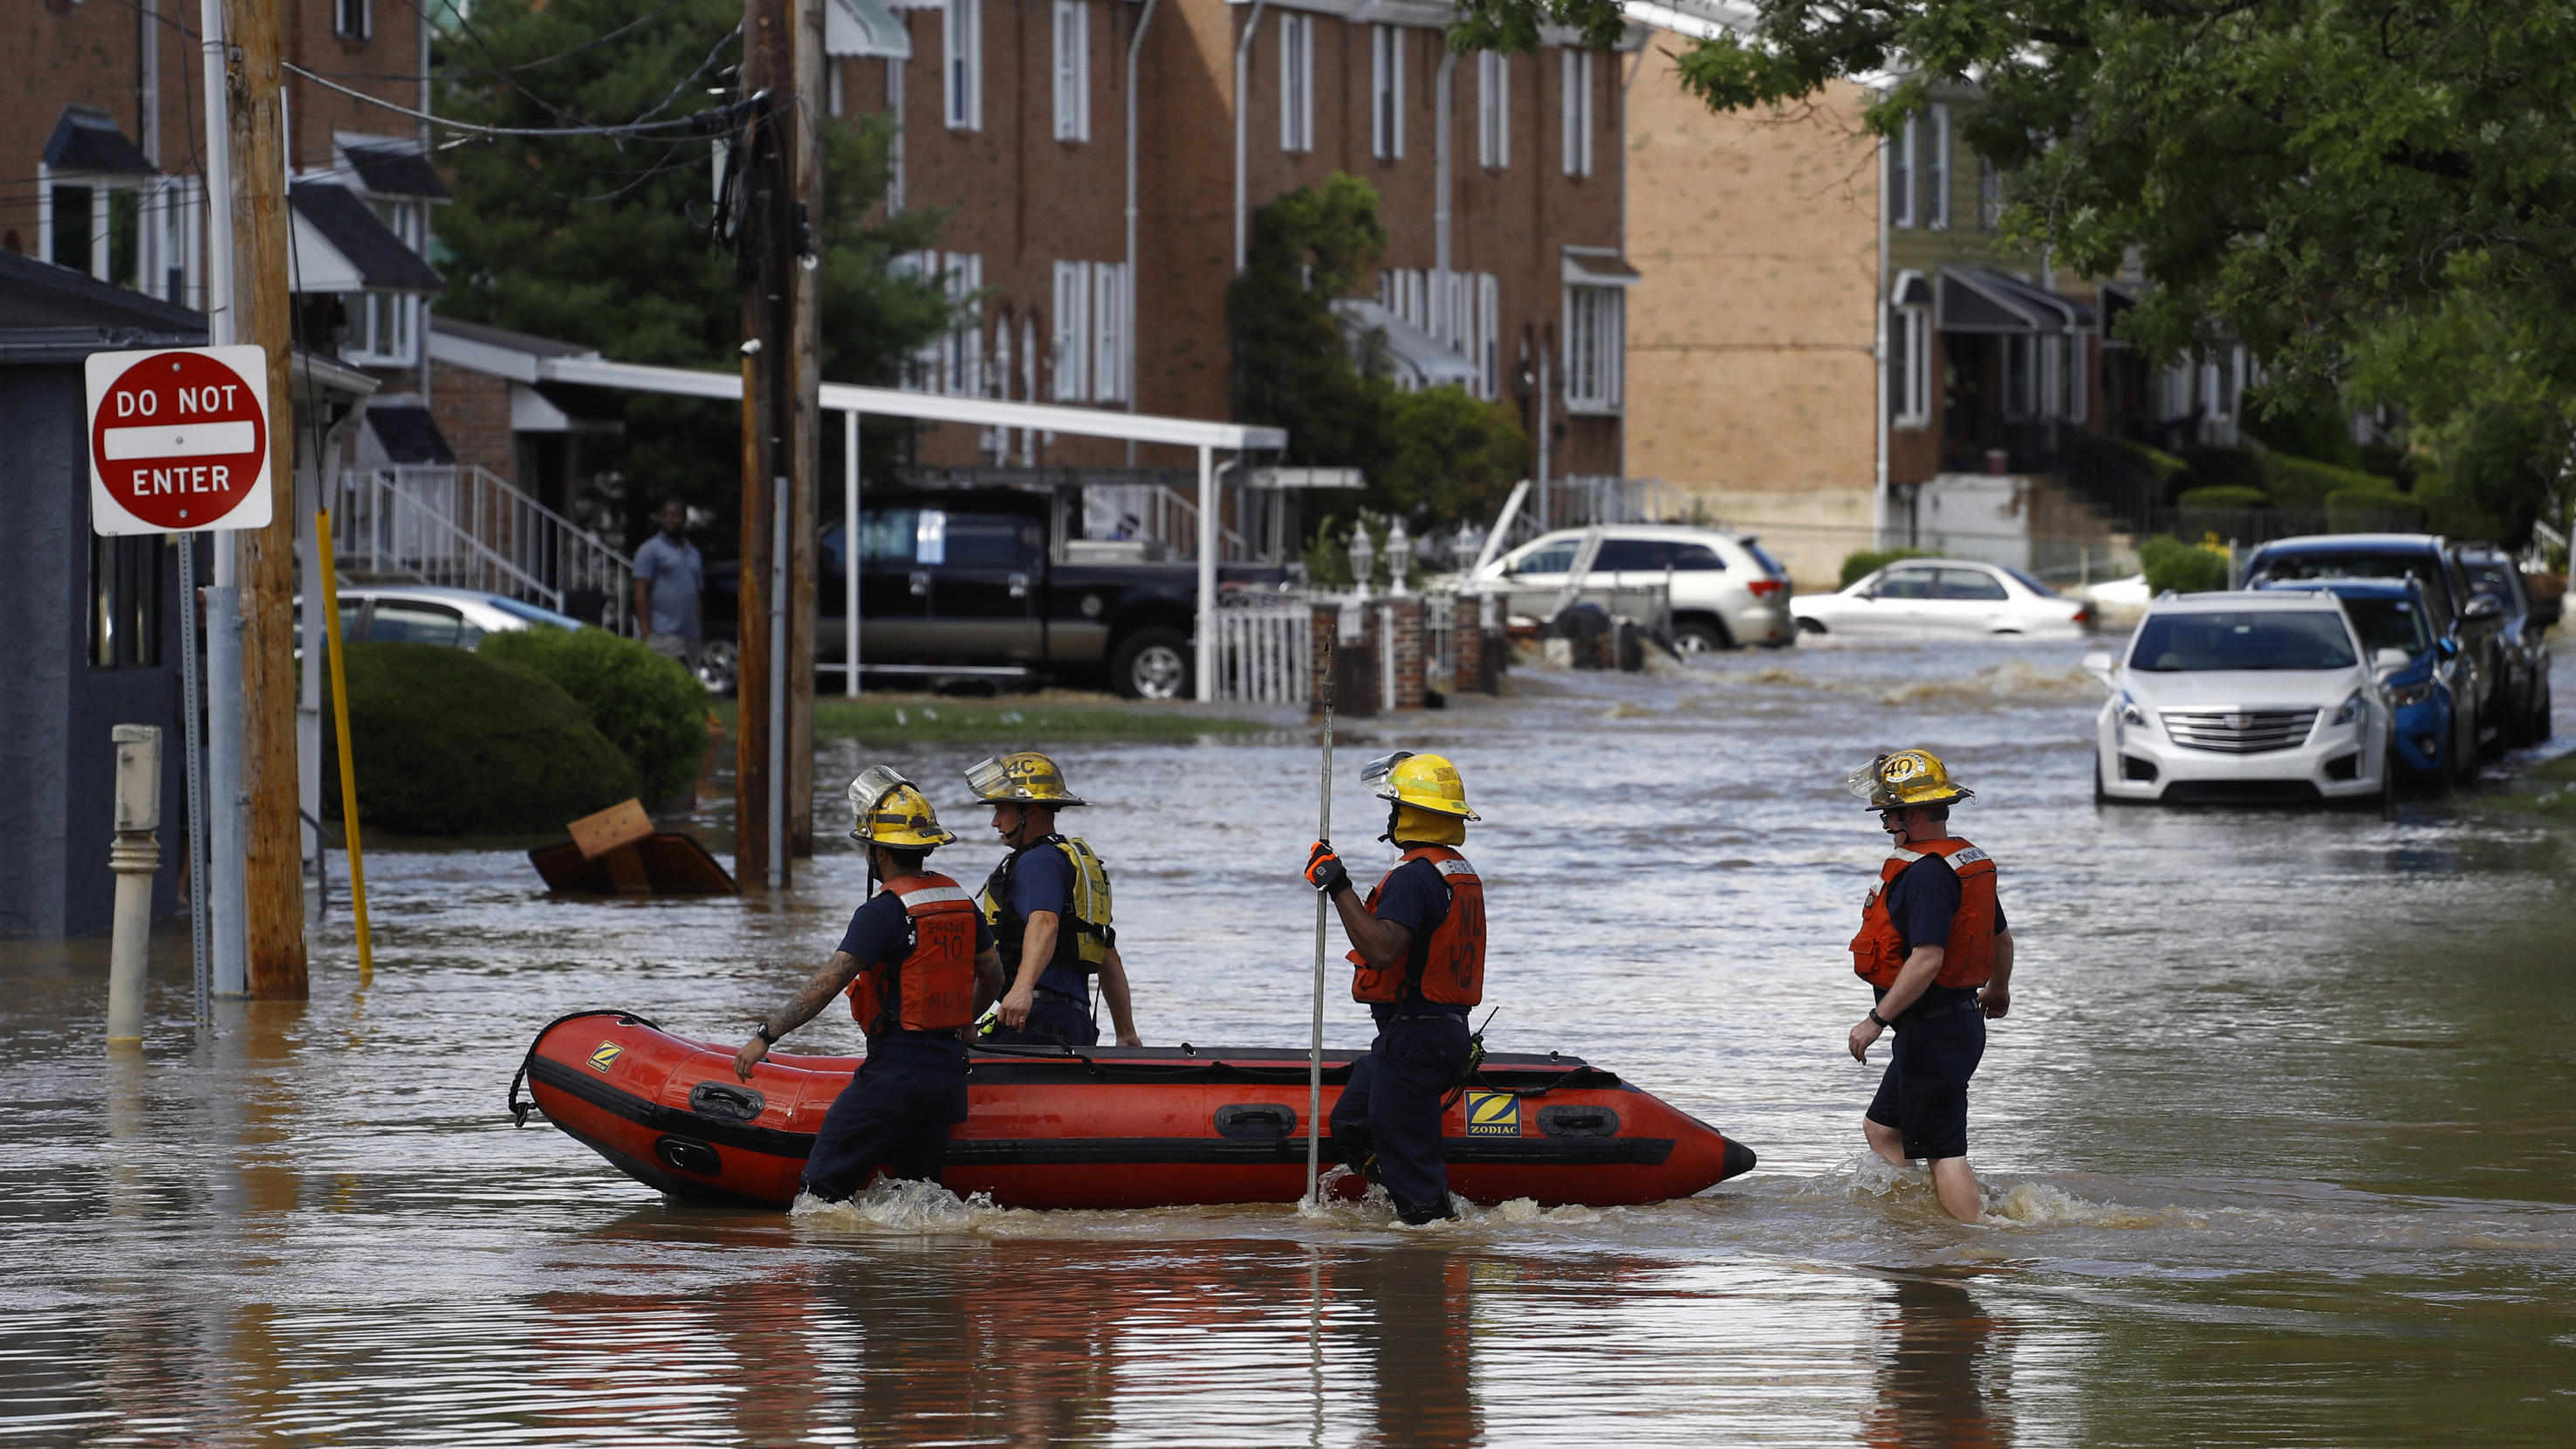 Philadelphia firefighters walk through a flooded neighborhood after Tropical Storm Isaias moved through, Tuesday, Aug. 4, 2020, in Philadelphia. The storm spawned tornadoes and dumped rain during an inland march up the U.S. East Coast after making la